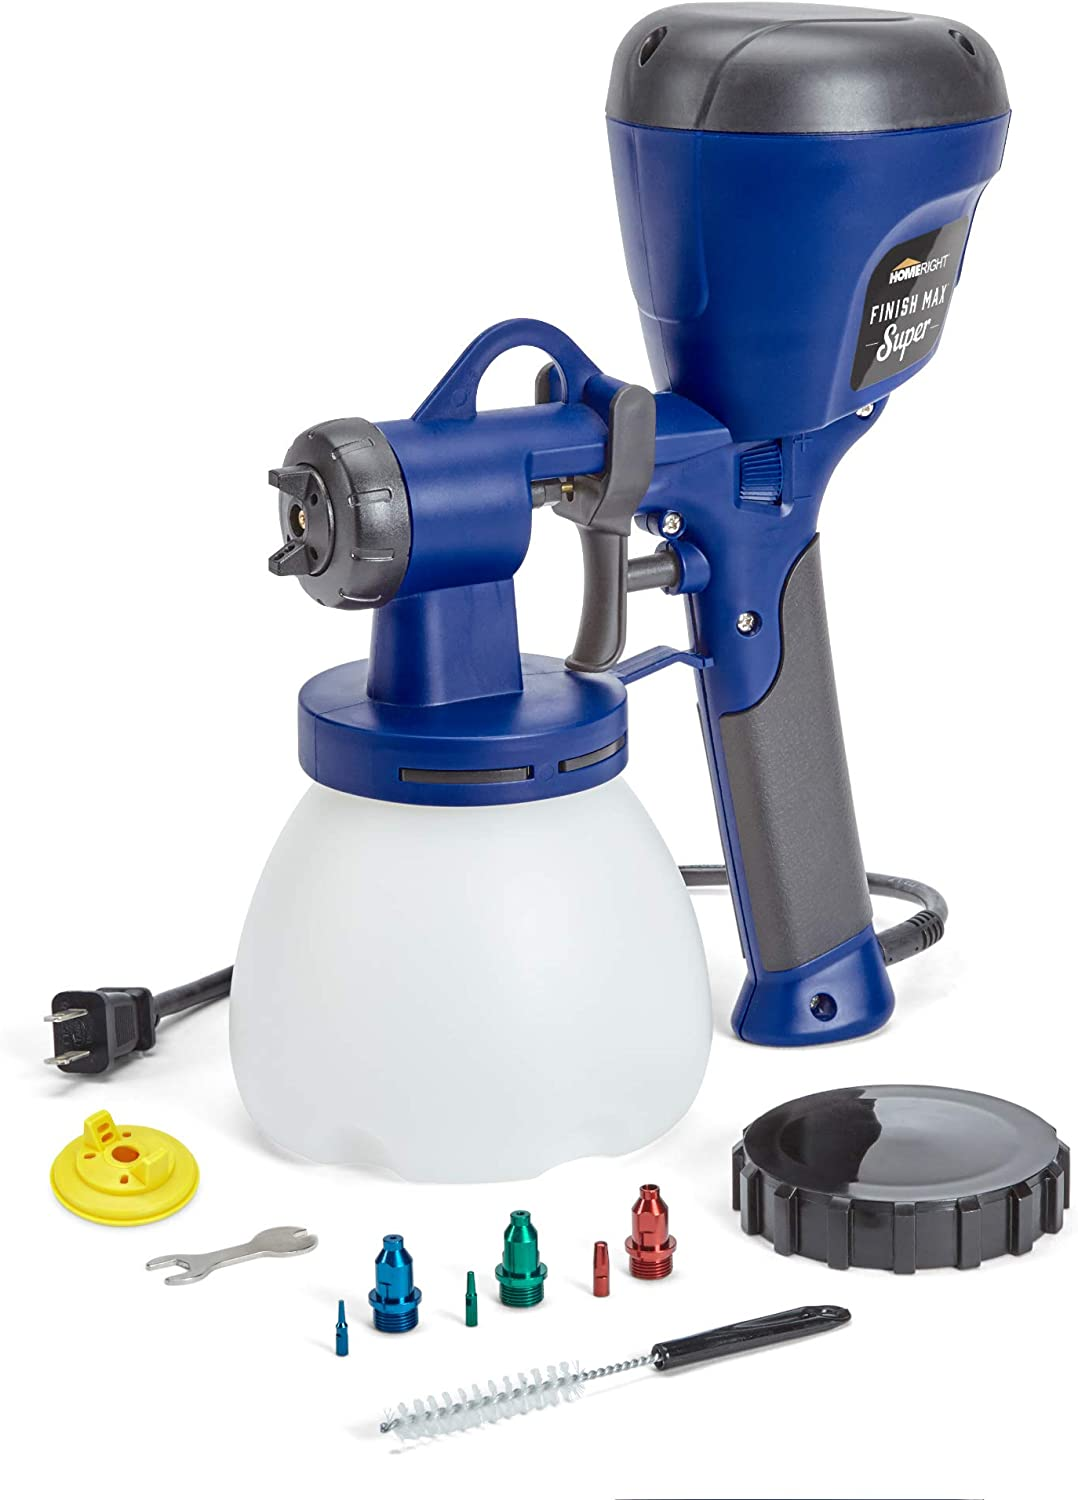 HomeRight HVLP Spray Gun for Painting Projects